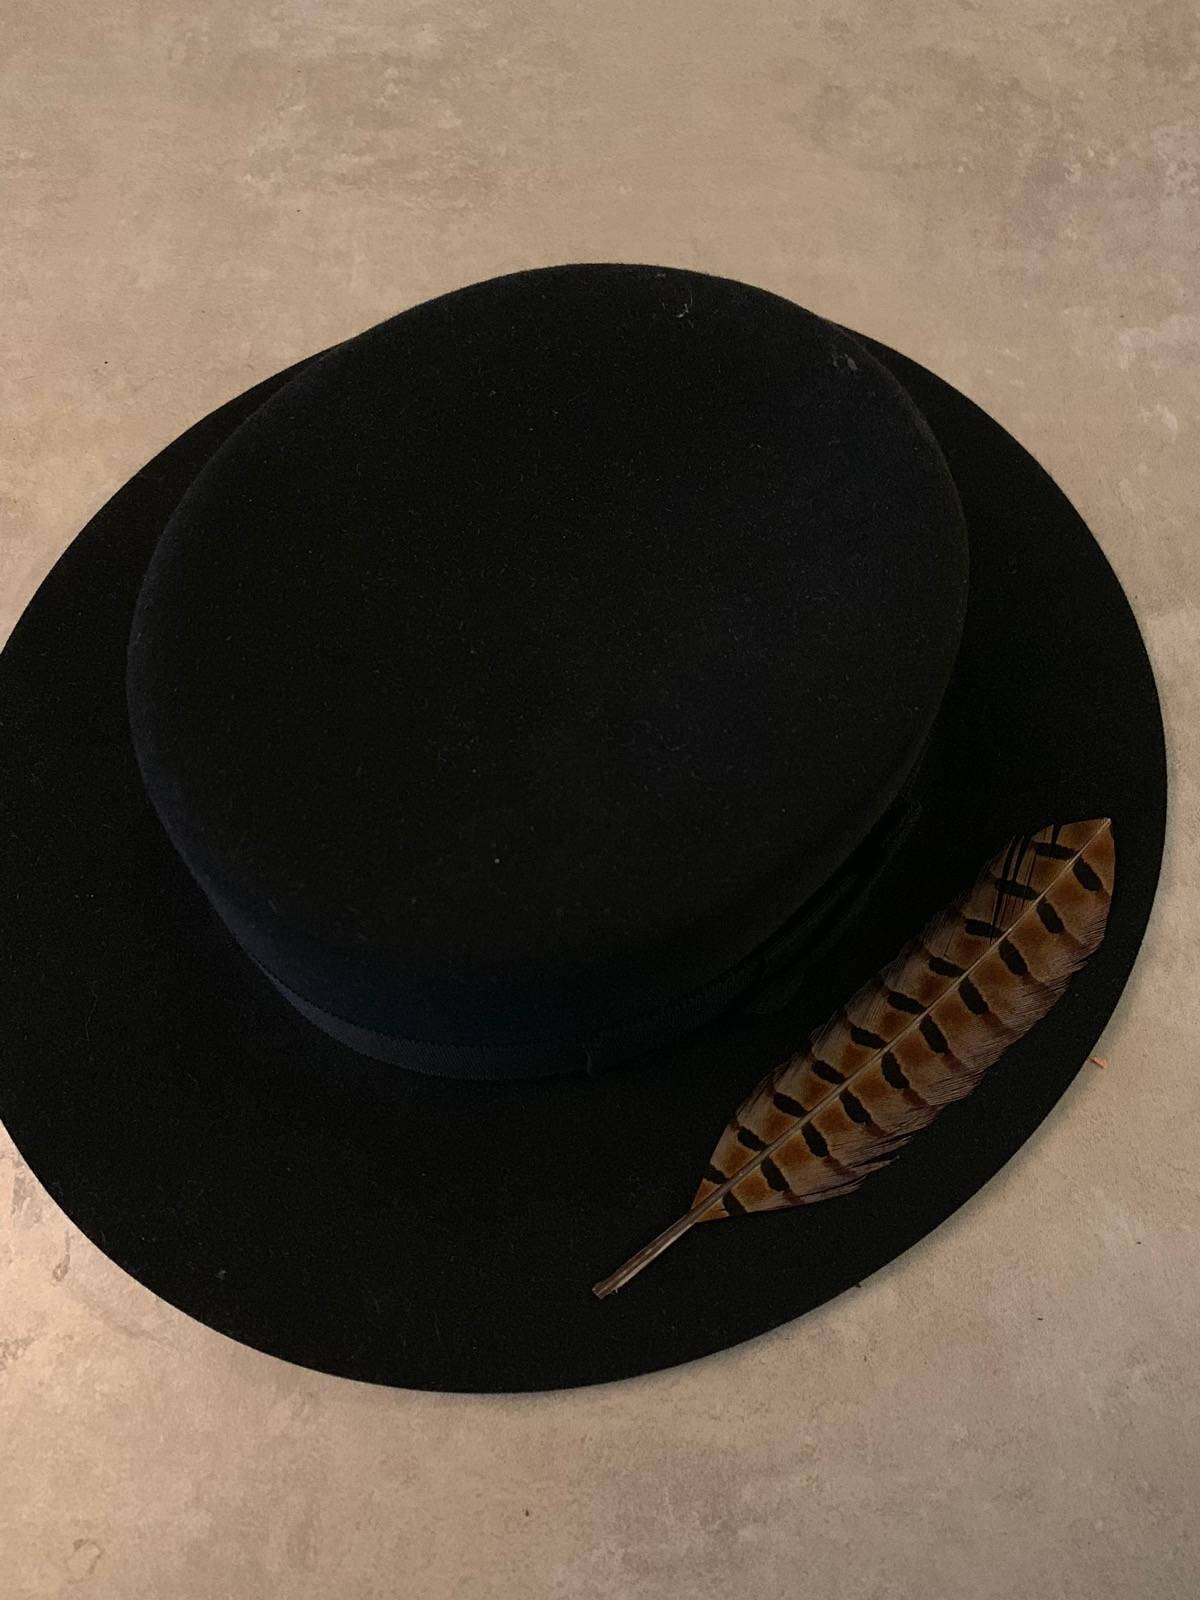 c8f1a9e09 Saint Laurent Paris Feather Fedora Size One Size $599